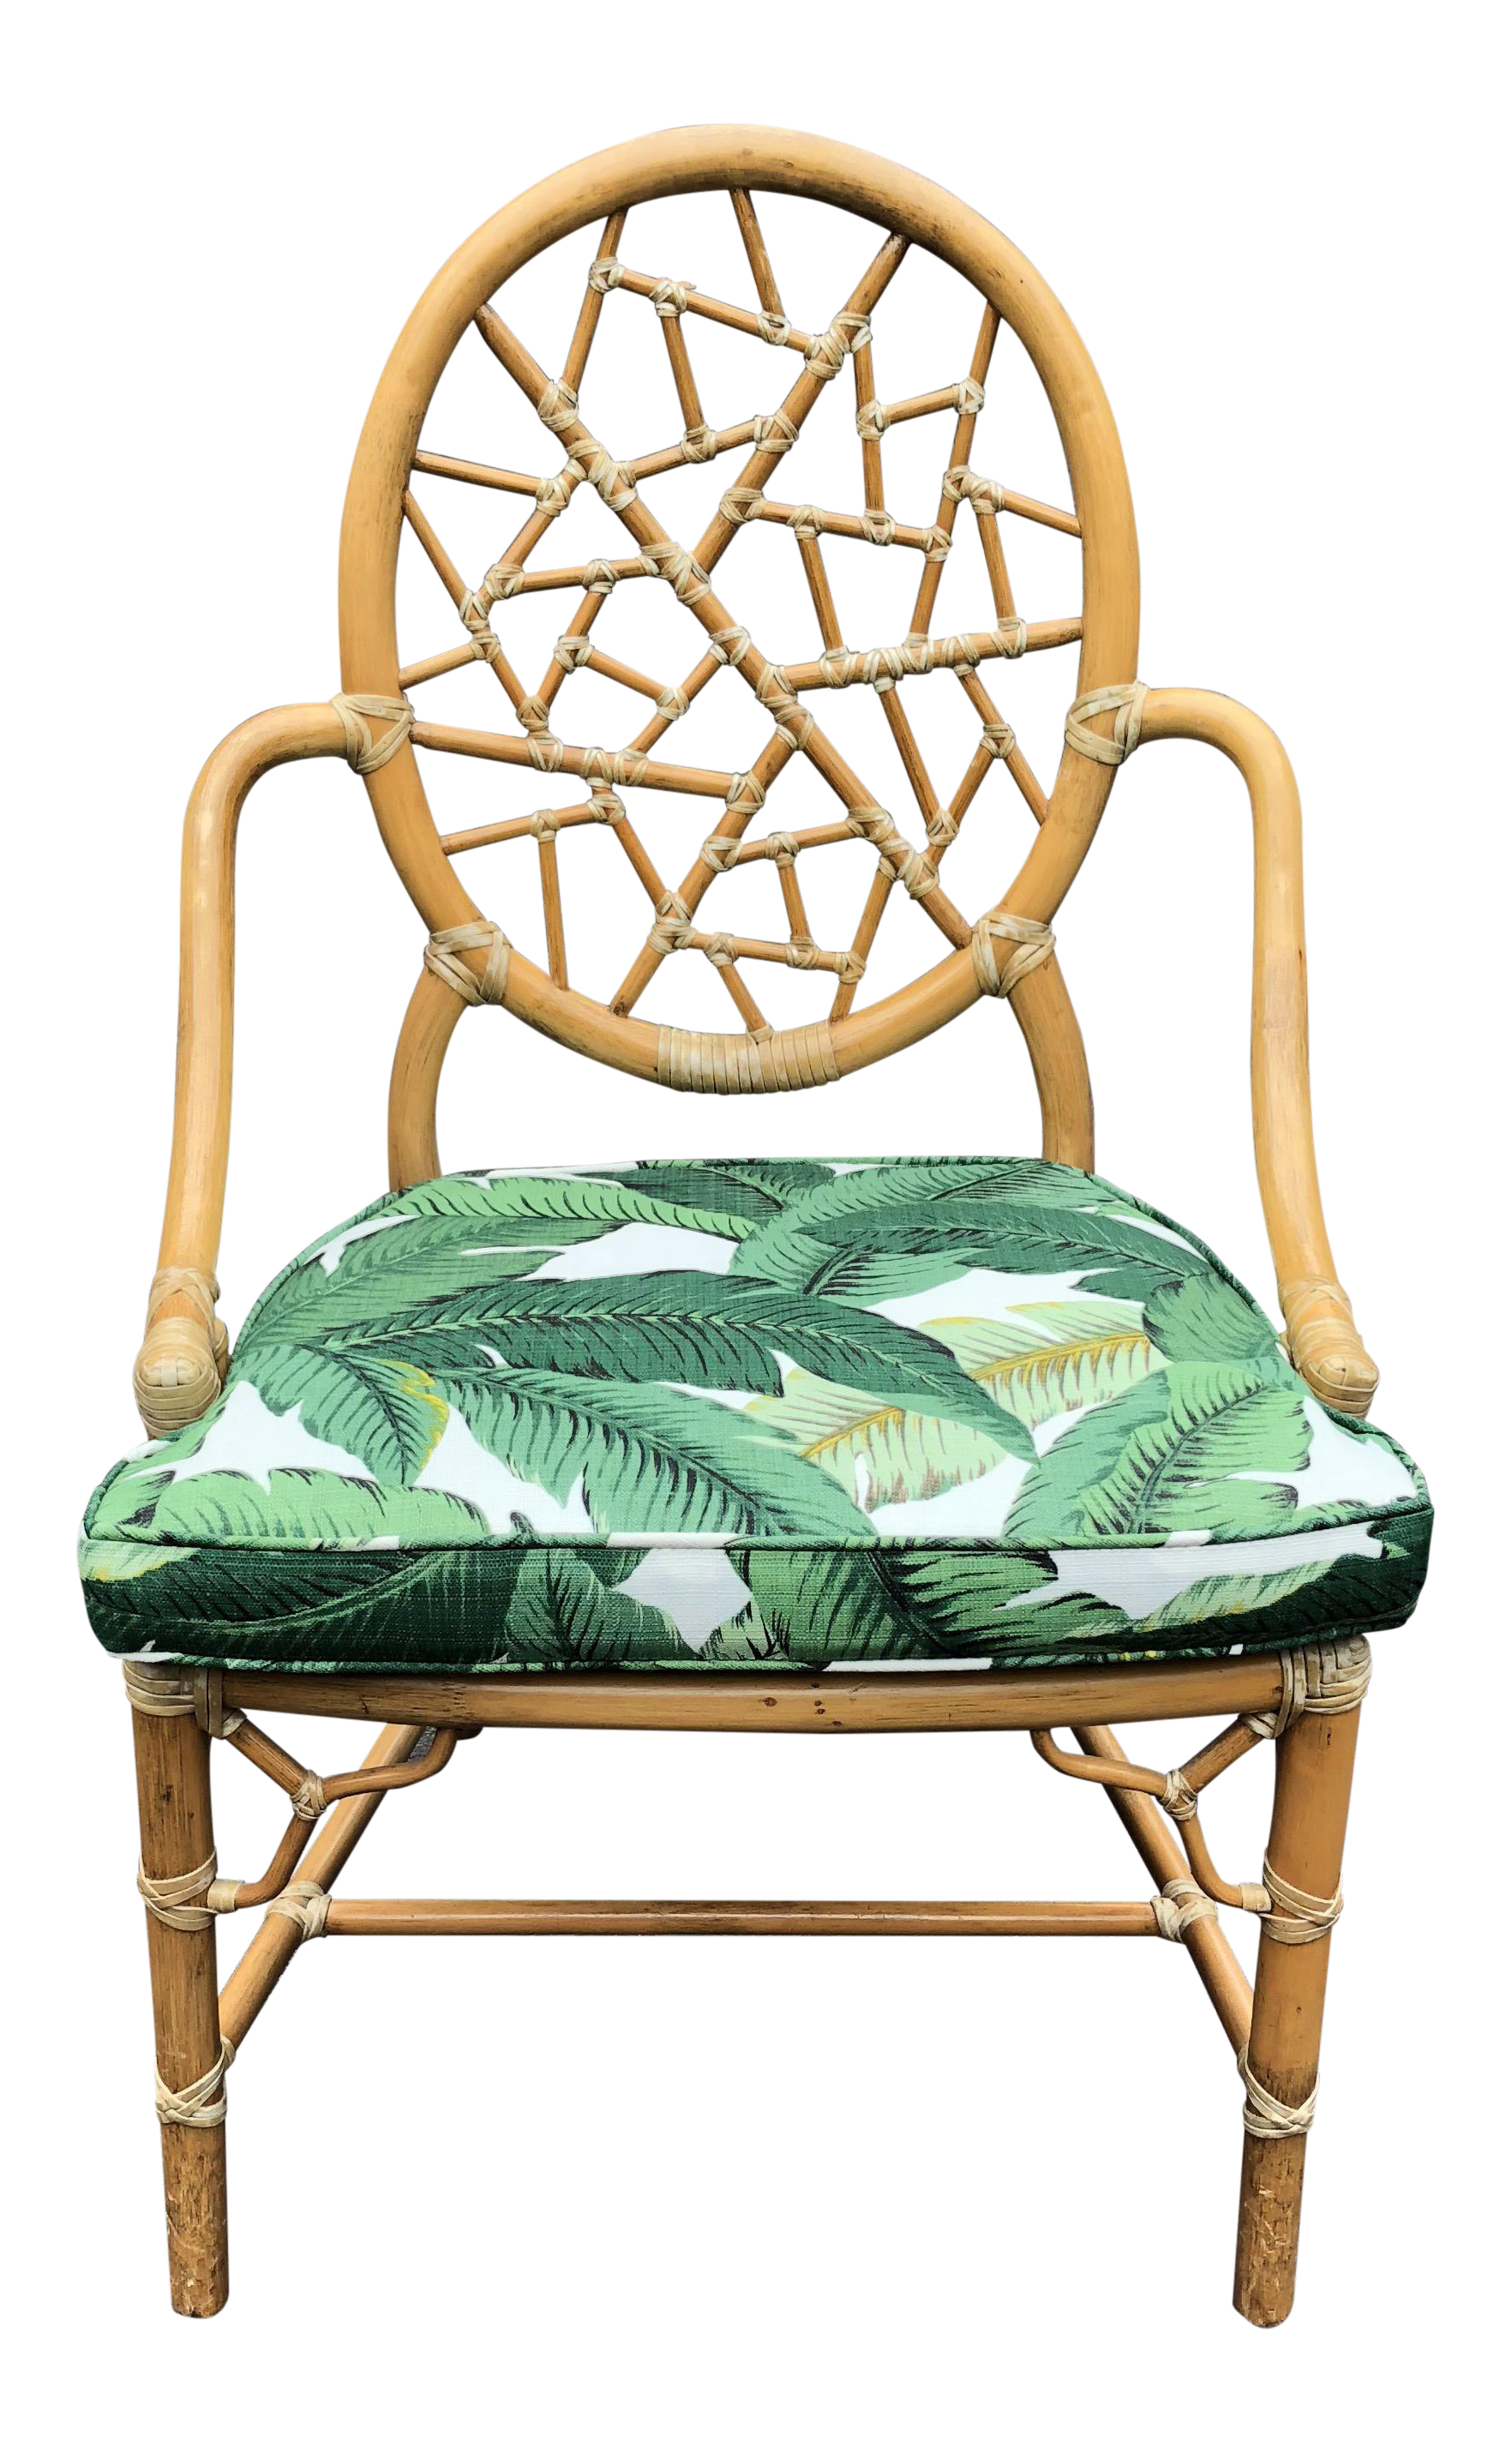 Vintage McGuire Palm Cushion Cracked Ice Rattan Chair